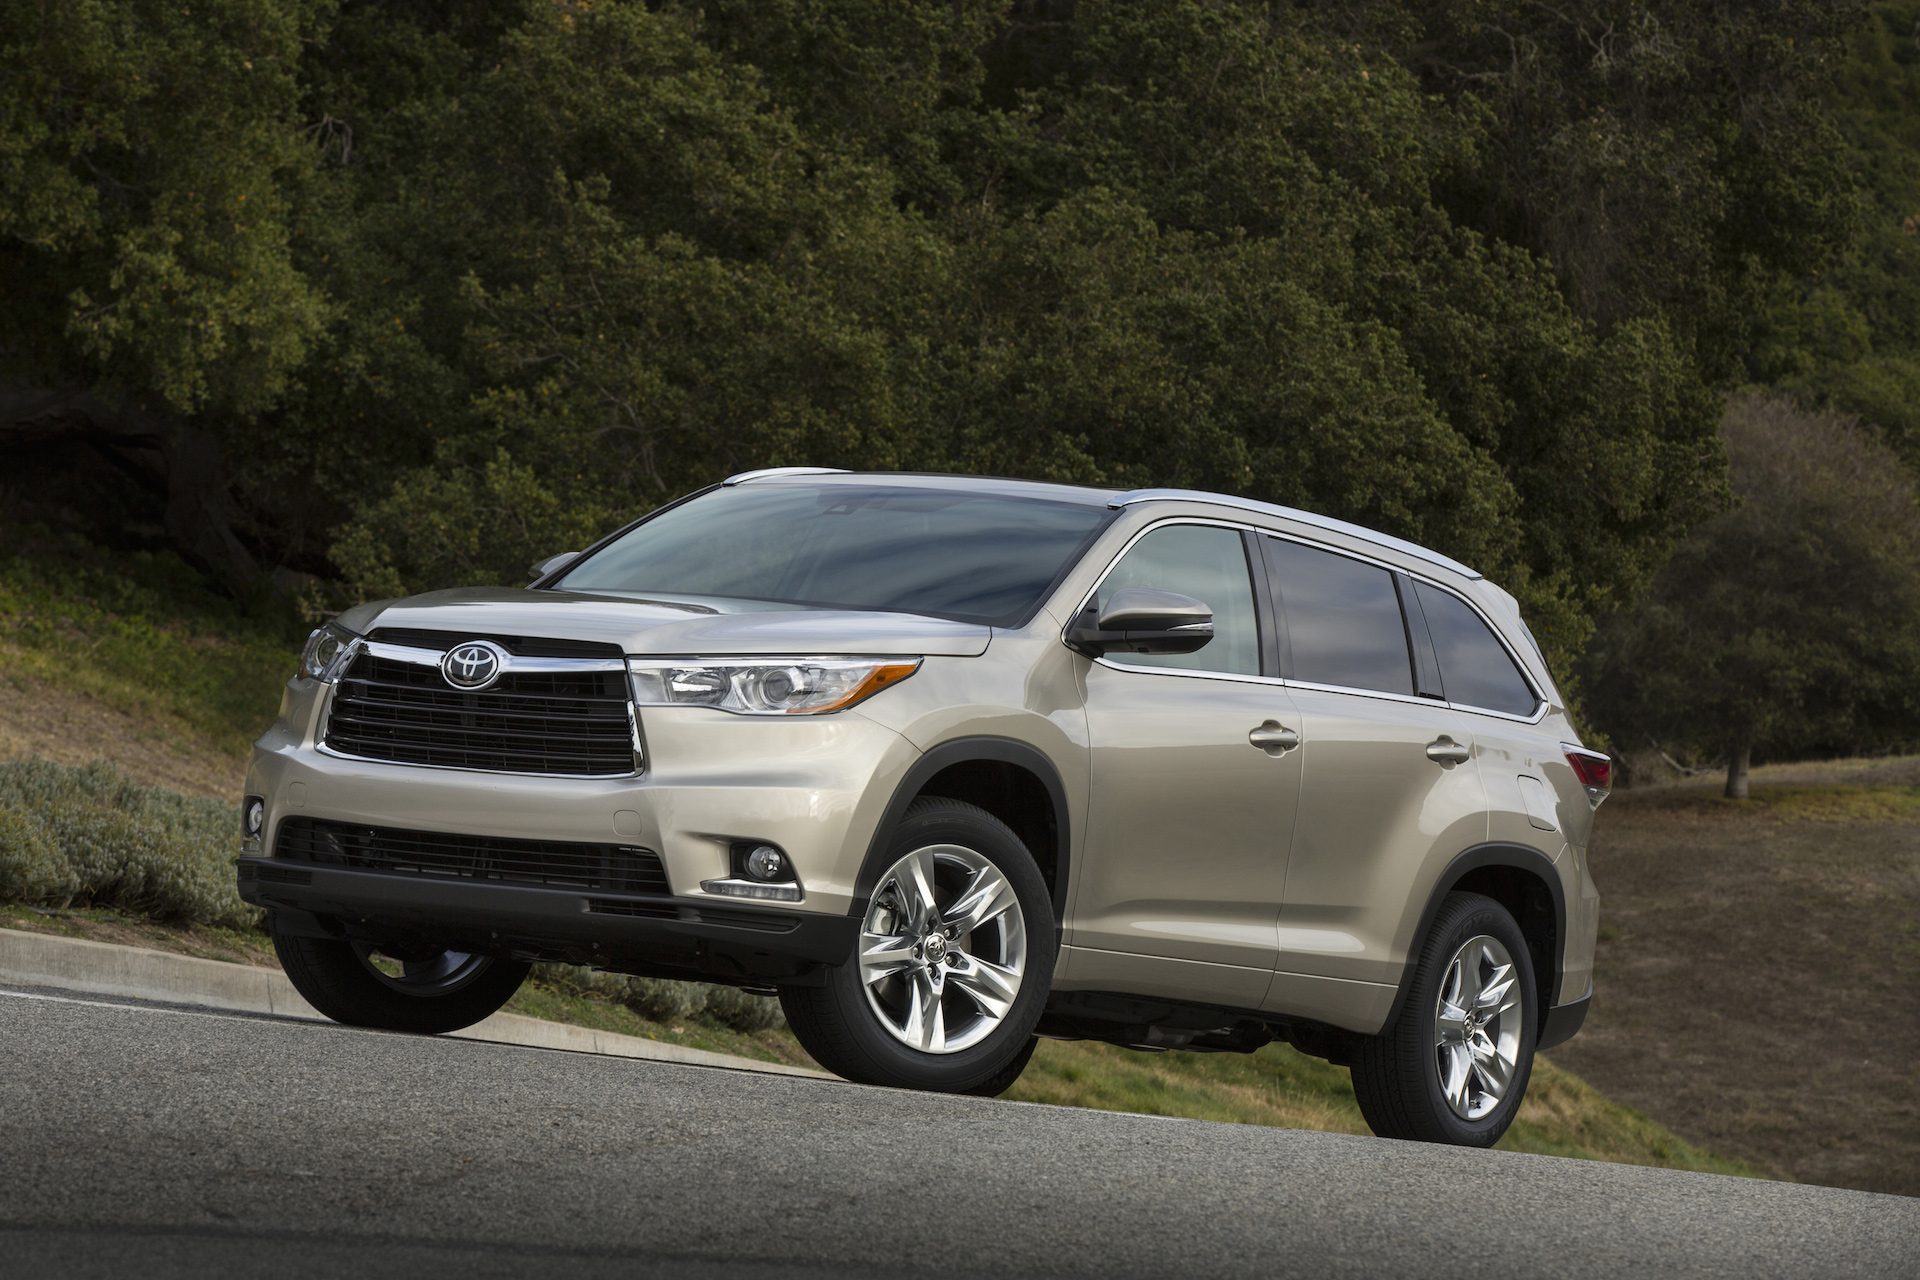 Columbus Gas Prices >> 2015 Toyota Highlander Review, Ratings, Specs, Prices, and ...